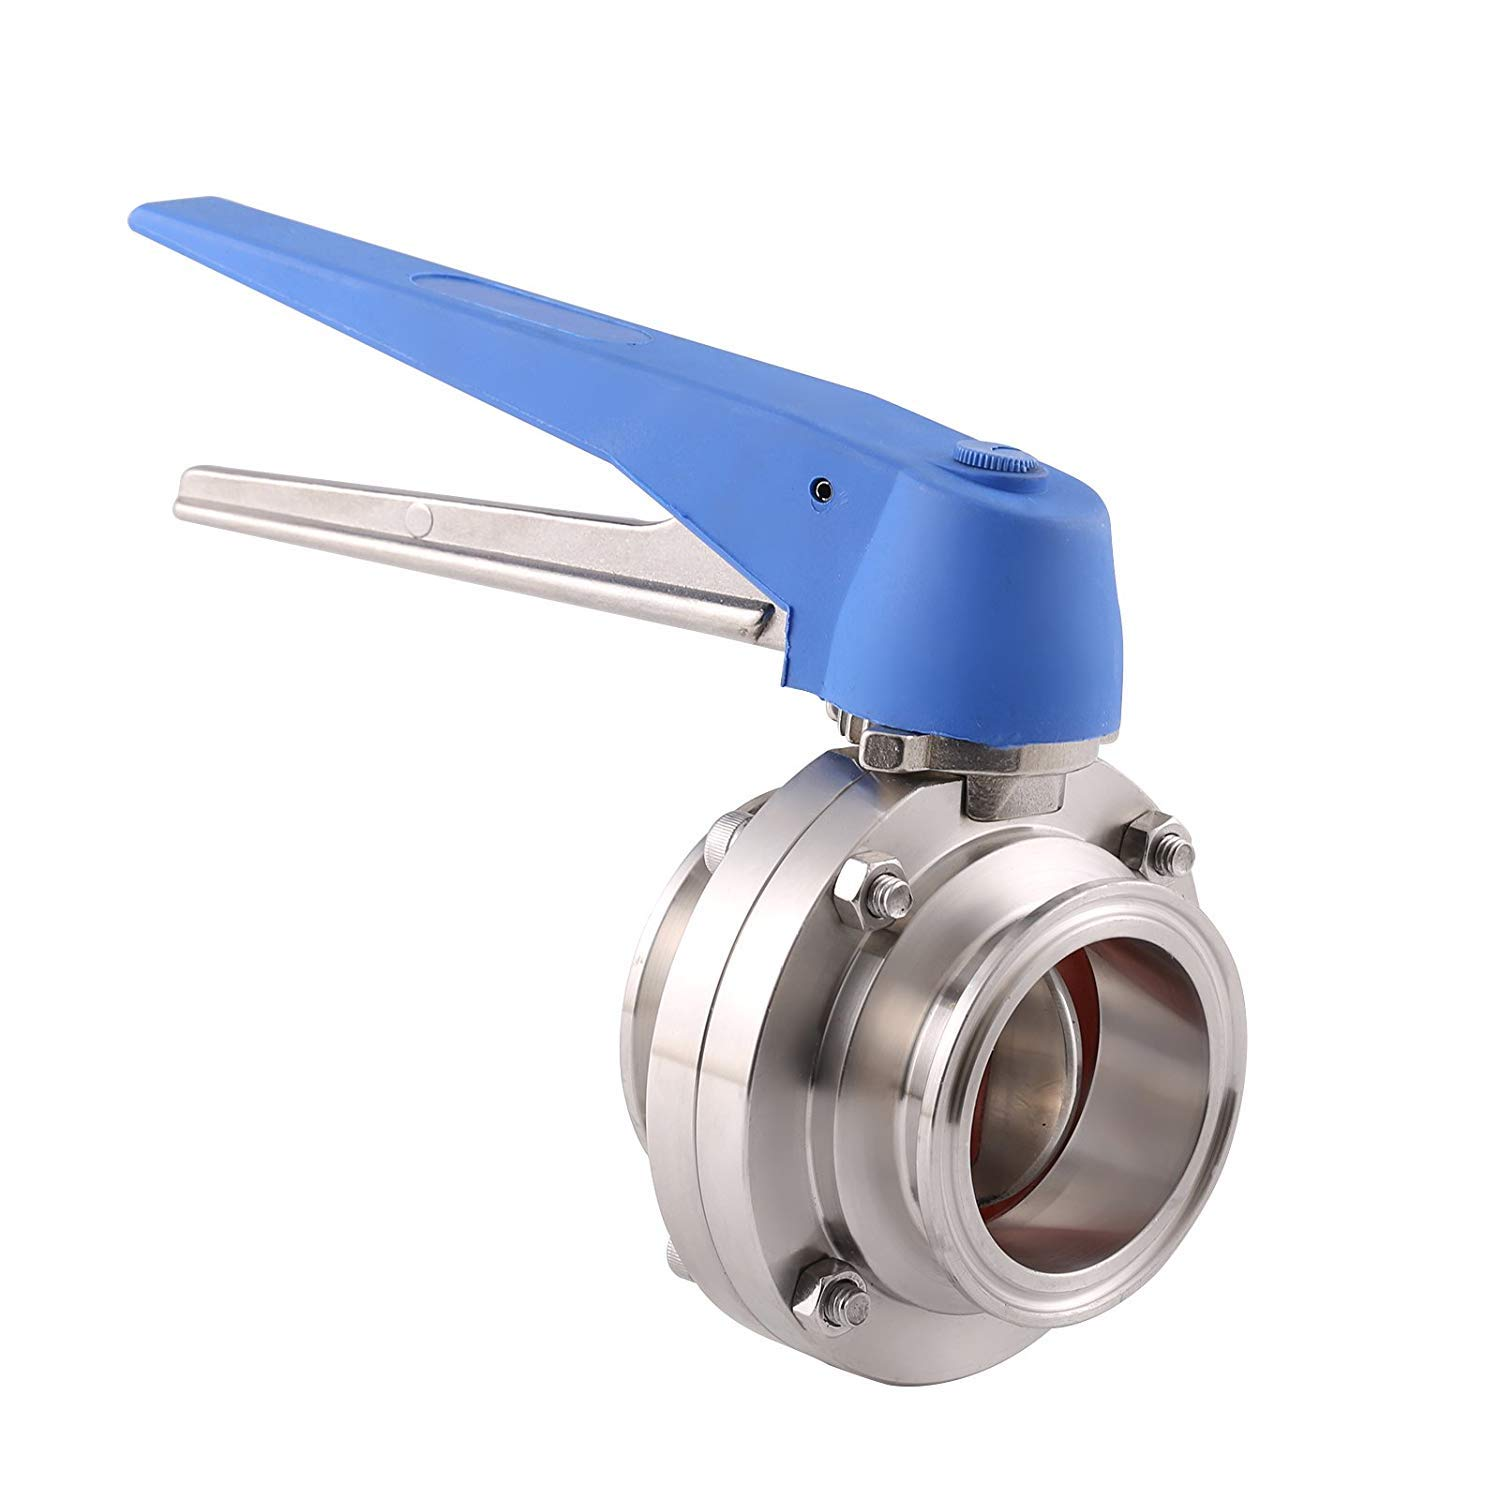 BOKYWOX 1.5'' Sanitary Stainless Steel 304 Tri Clamp Butterfly Valve with Trigger Handle and Silicon Seal